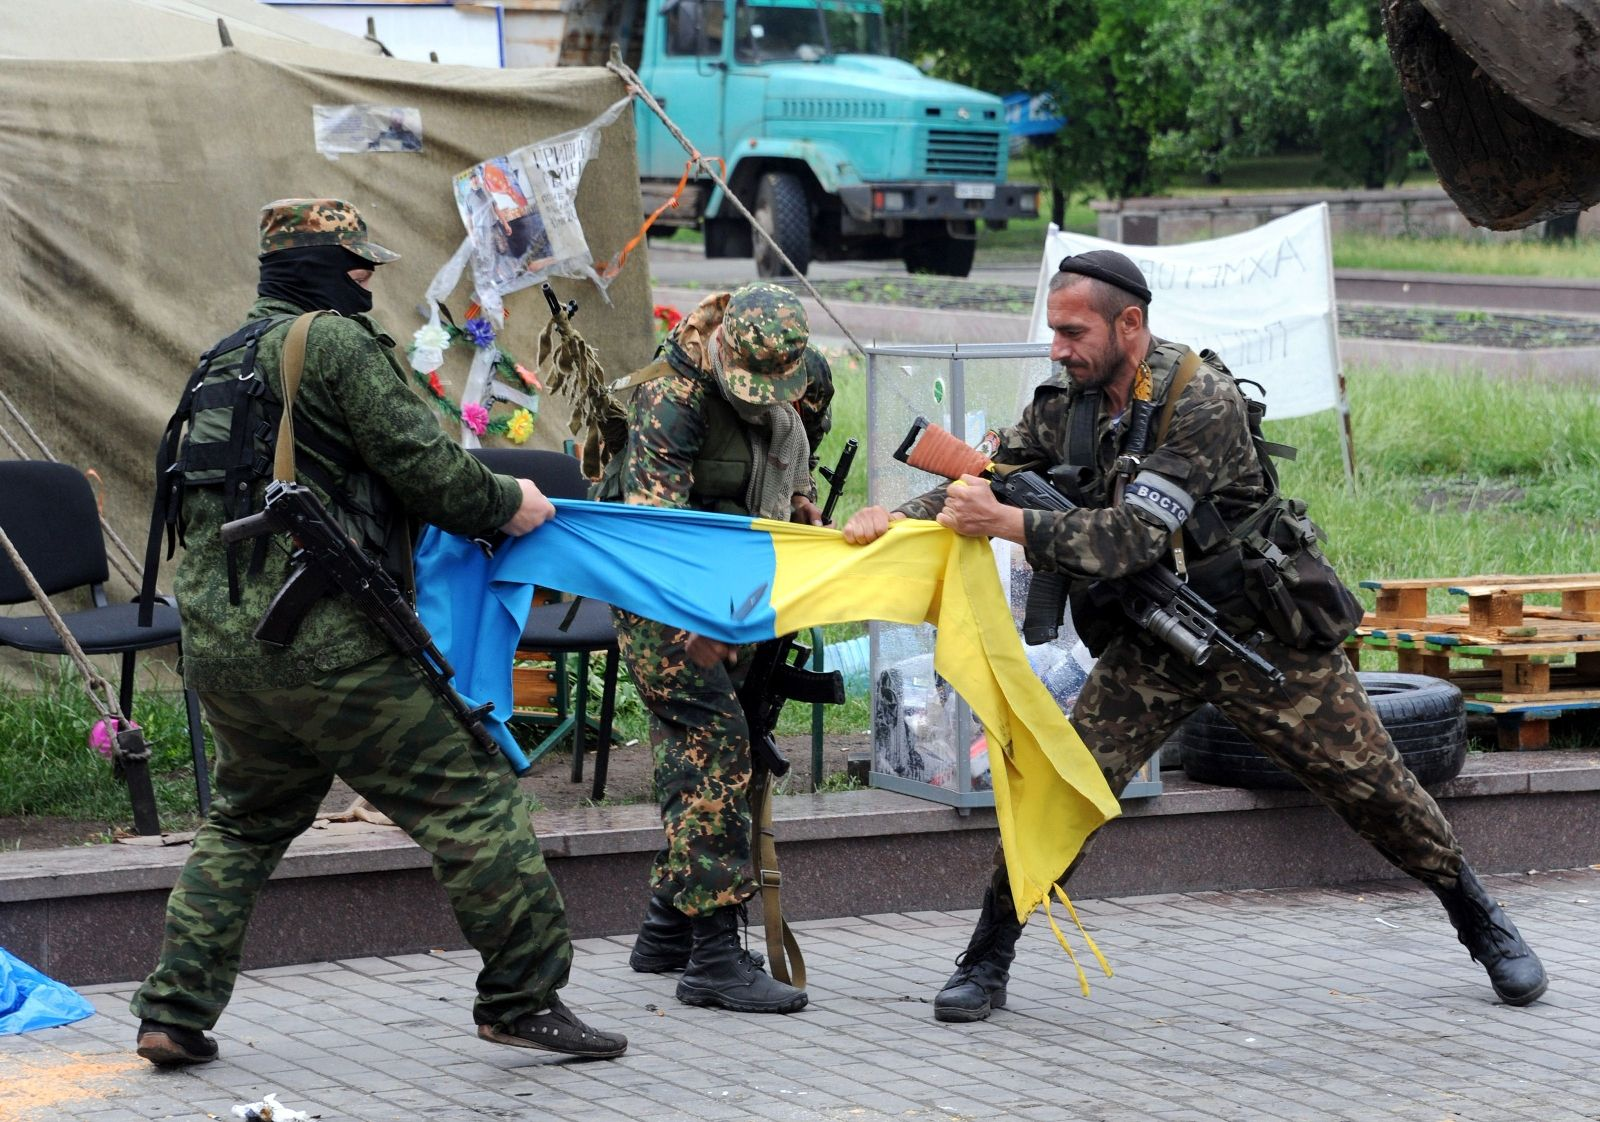 An Unauthenticated Document Planning the Retreat of Russian Special Forces from East Ukraine